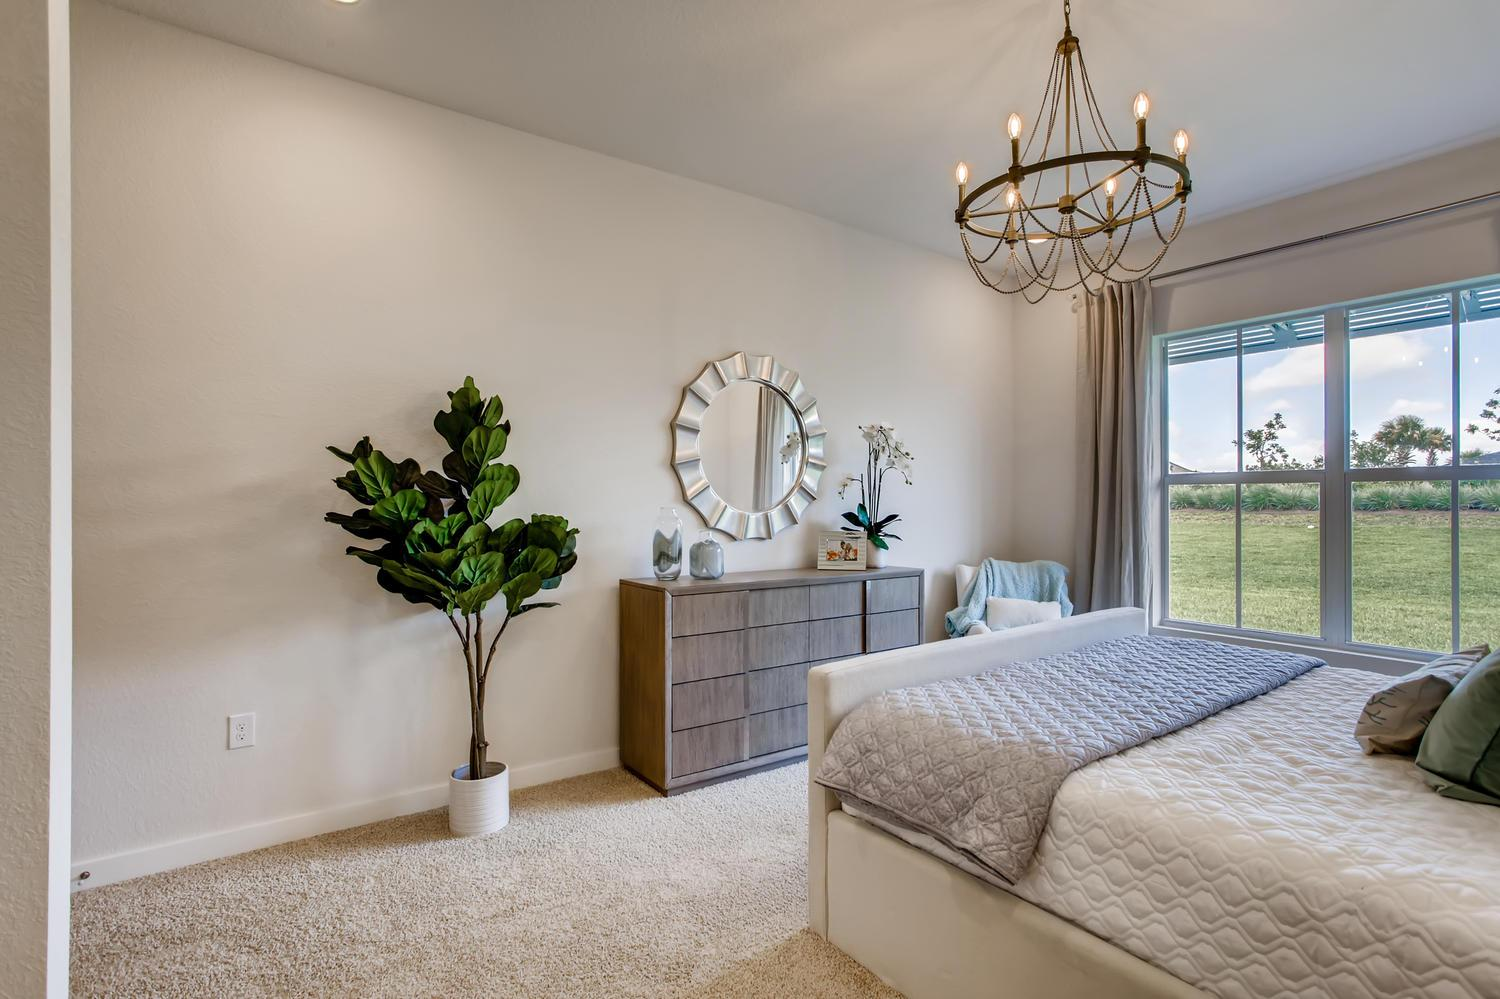 Bedroom featured in the Sydney By D.R. Horton in Palm Beach County, FL